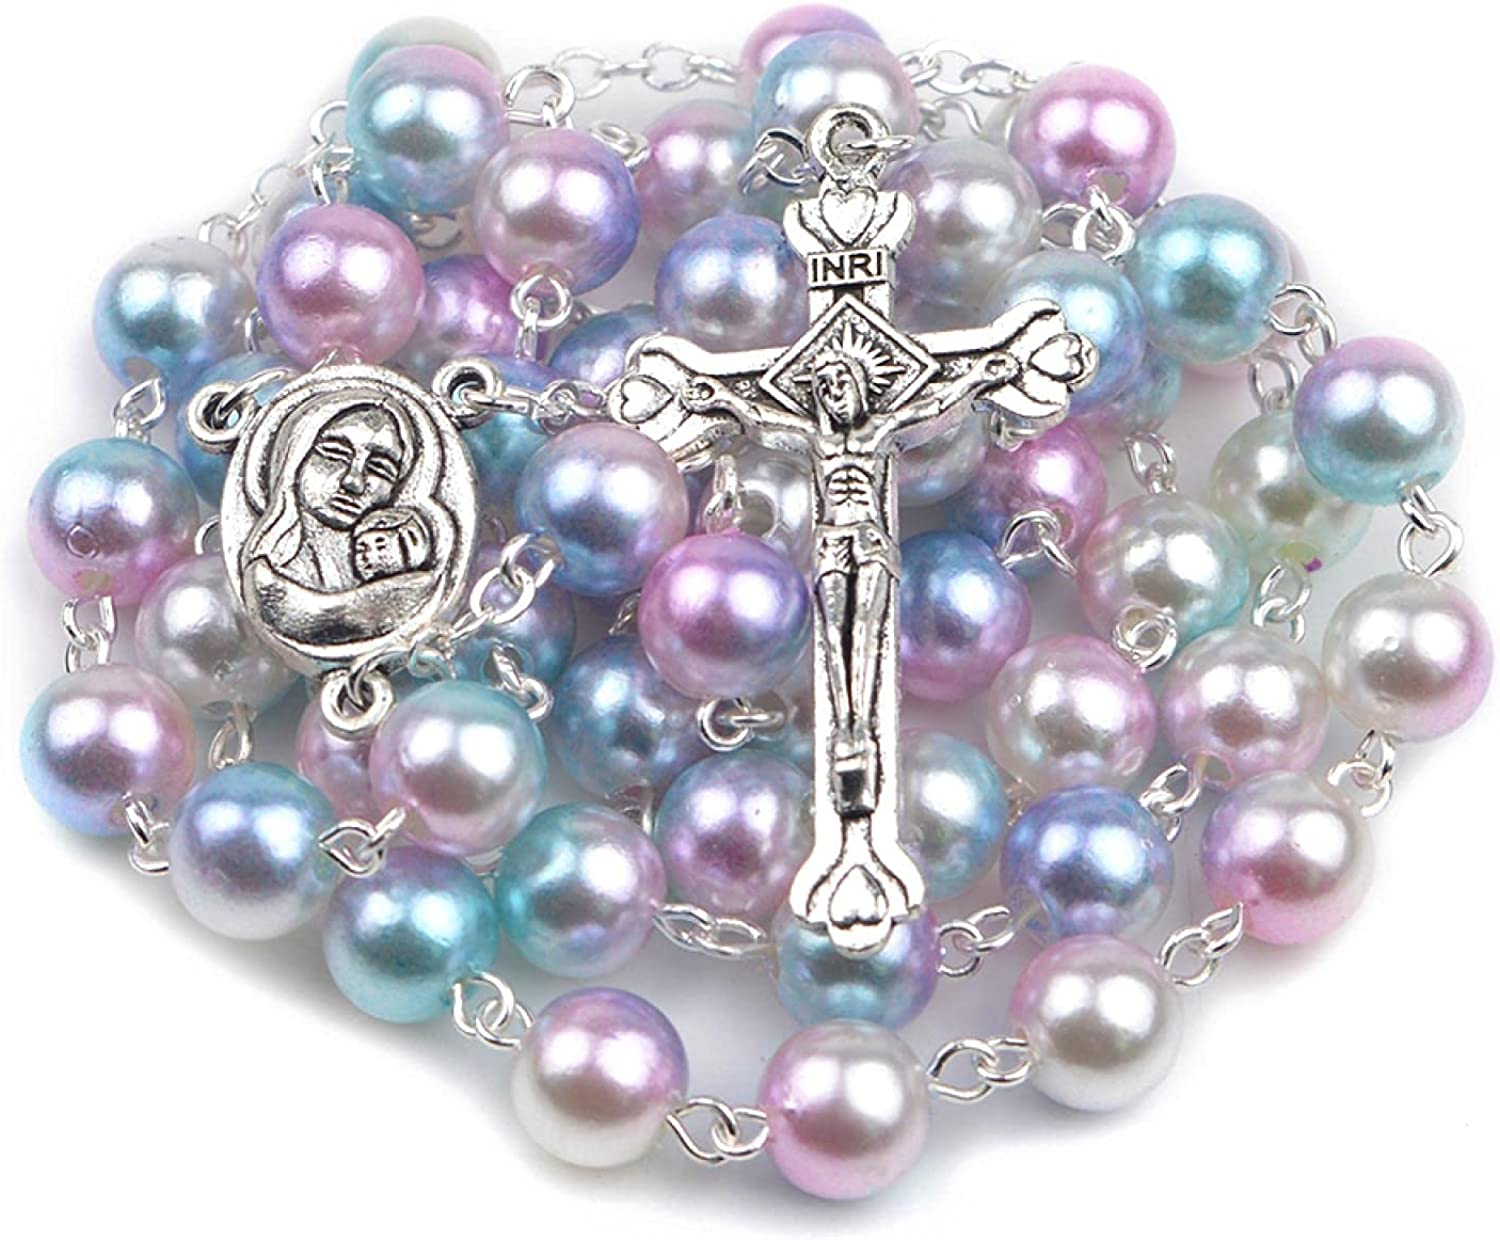 Acrylic Pearl Round Bead Necklaces Virgin Mary Multi Rosary Croos Necklace